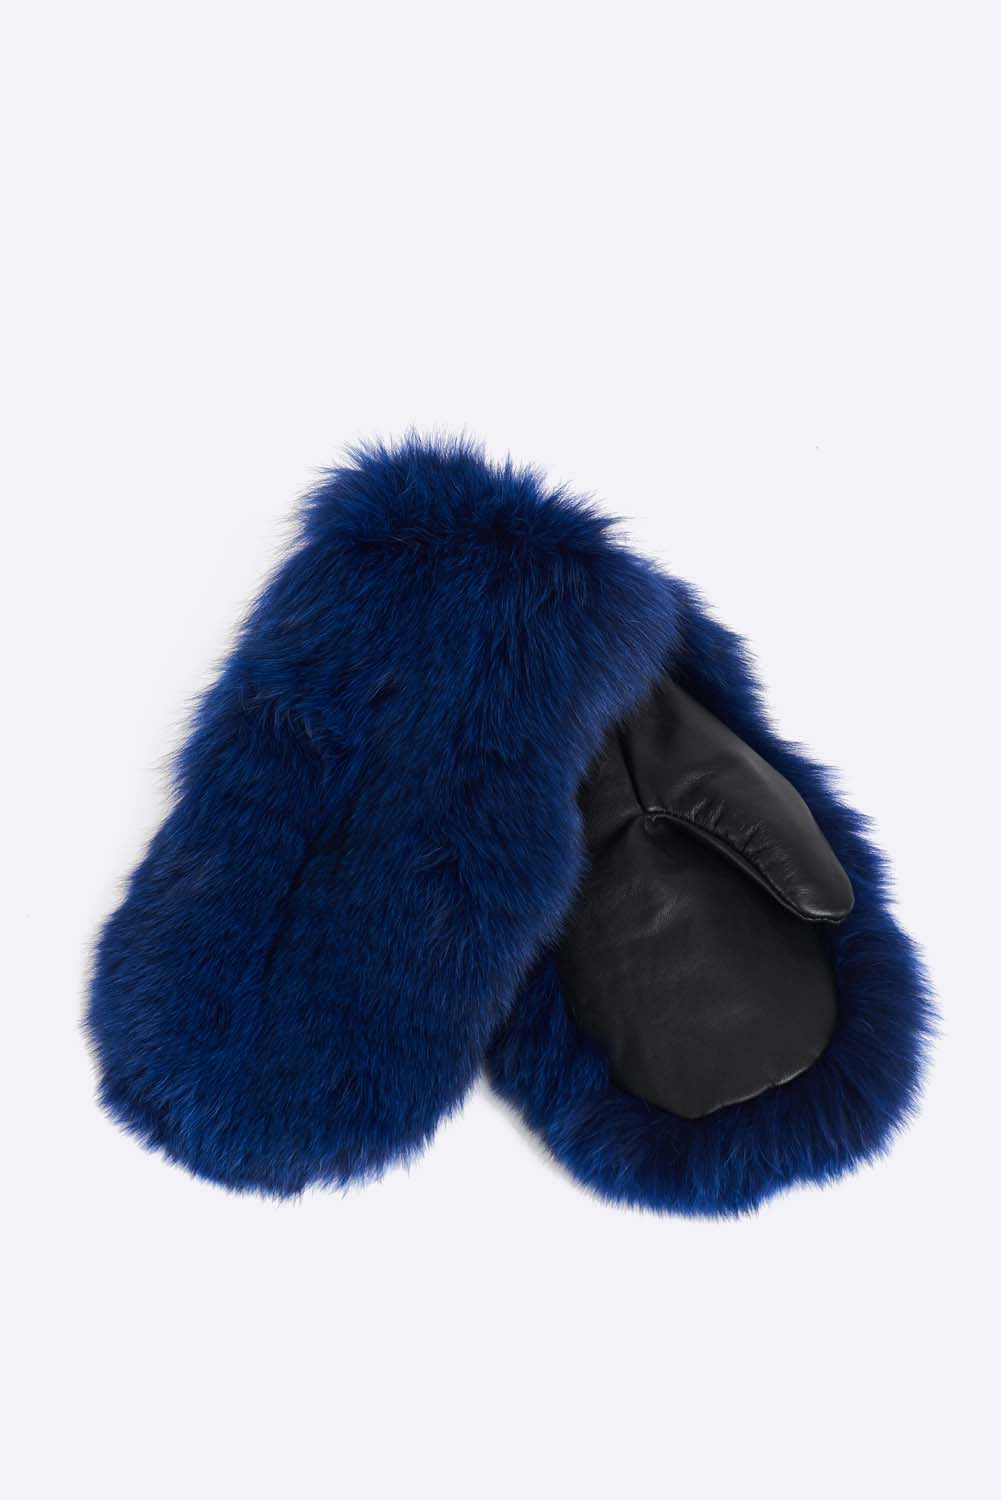 Upcycled fox fur winter mittens with a polyester lining. Will keep your hands warm in the coldest winter conditions. Has a leather trim and is cut, dyed and stitched by hand. Hand made in Montreal.